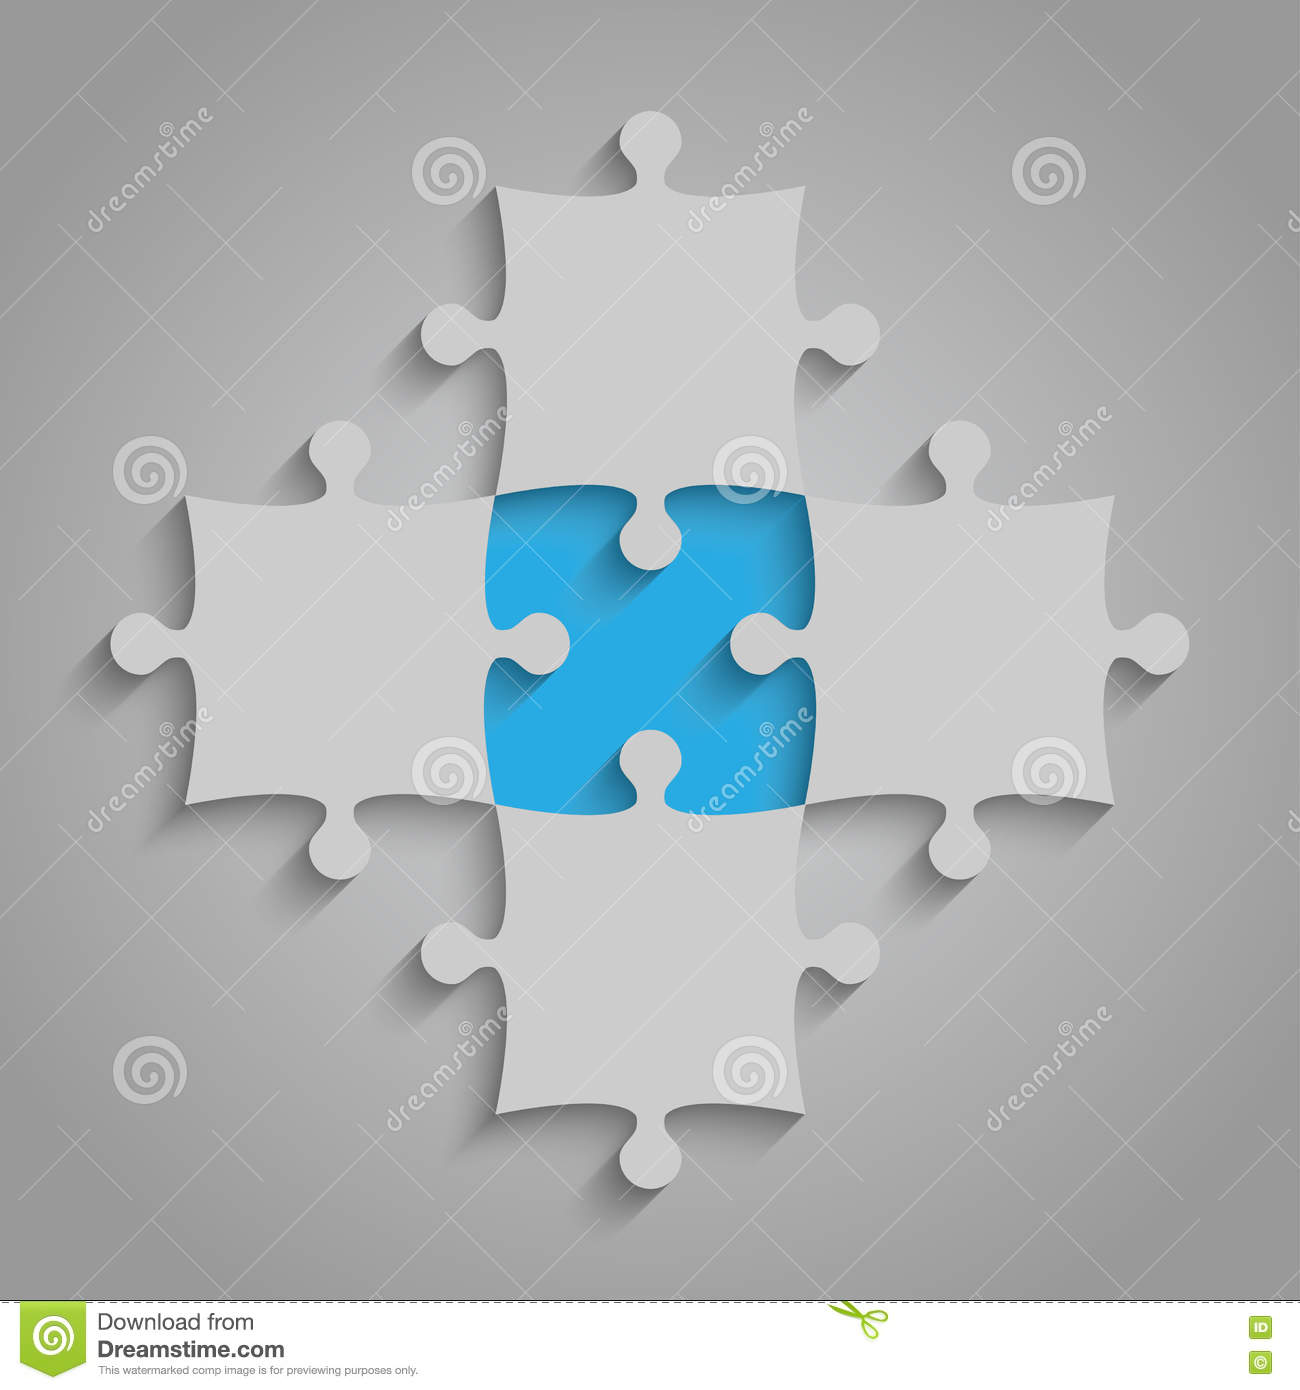 Vector Element Puzzles JigSaw - 5 Pieces  Blue  Stock Vector